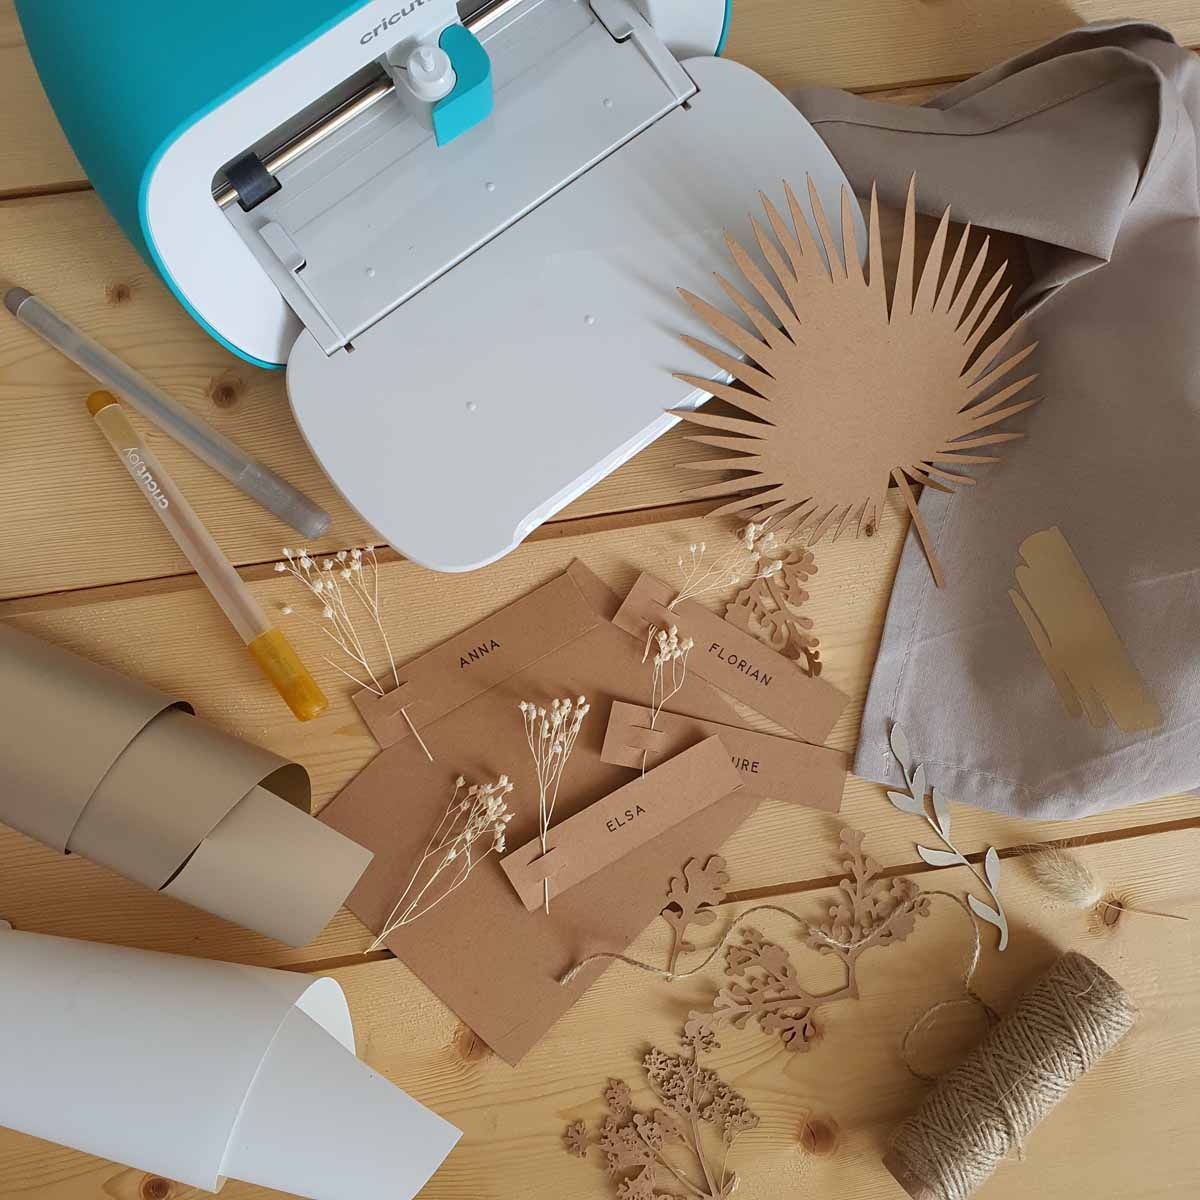 Laure Coulombel - I LOVE DIY working with Cricut Joy